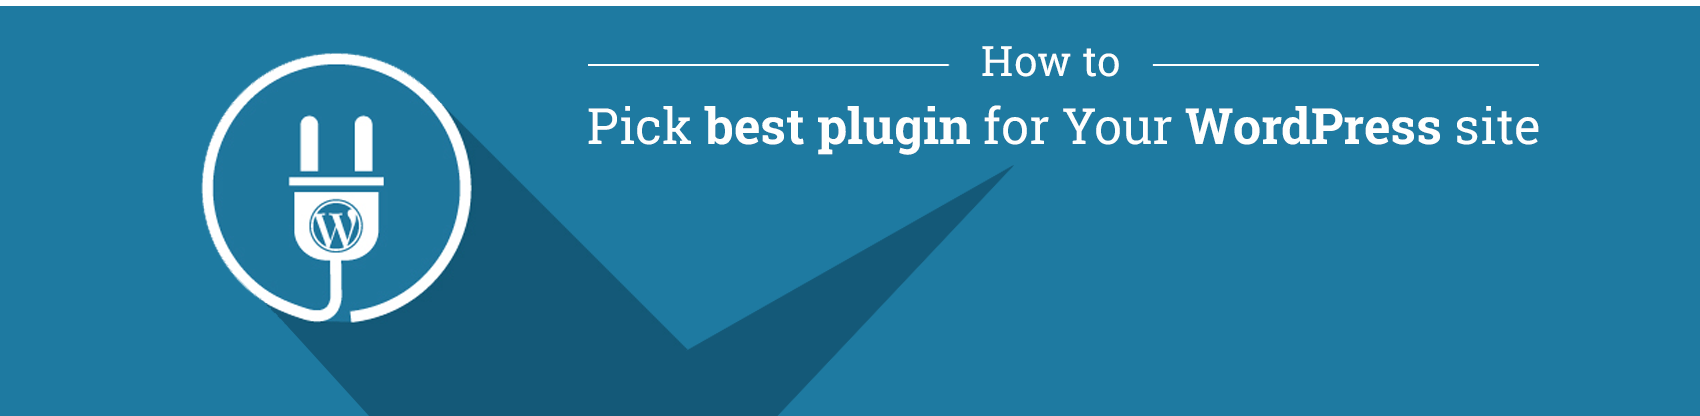 best plugins for wordpress 2016